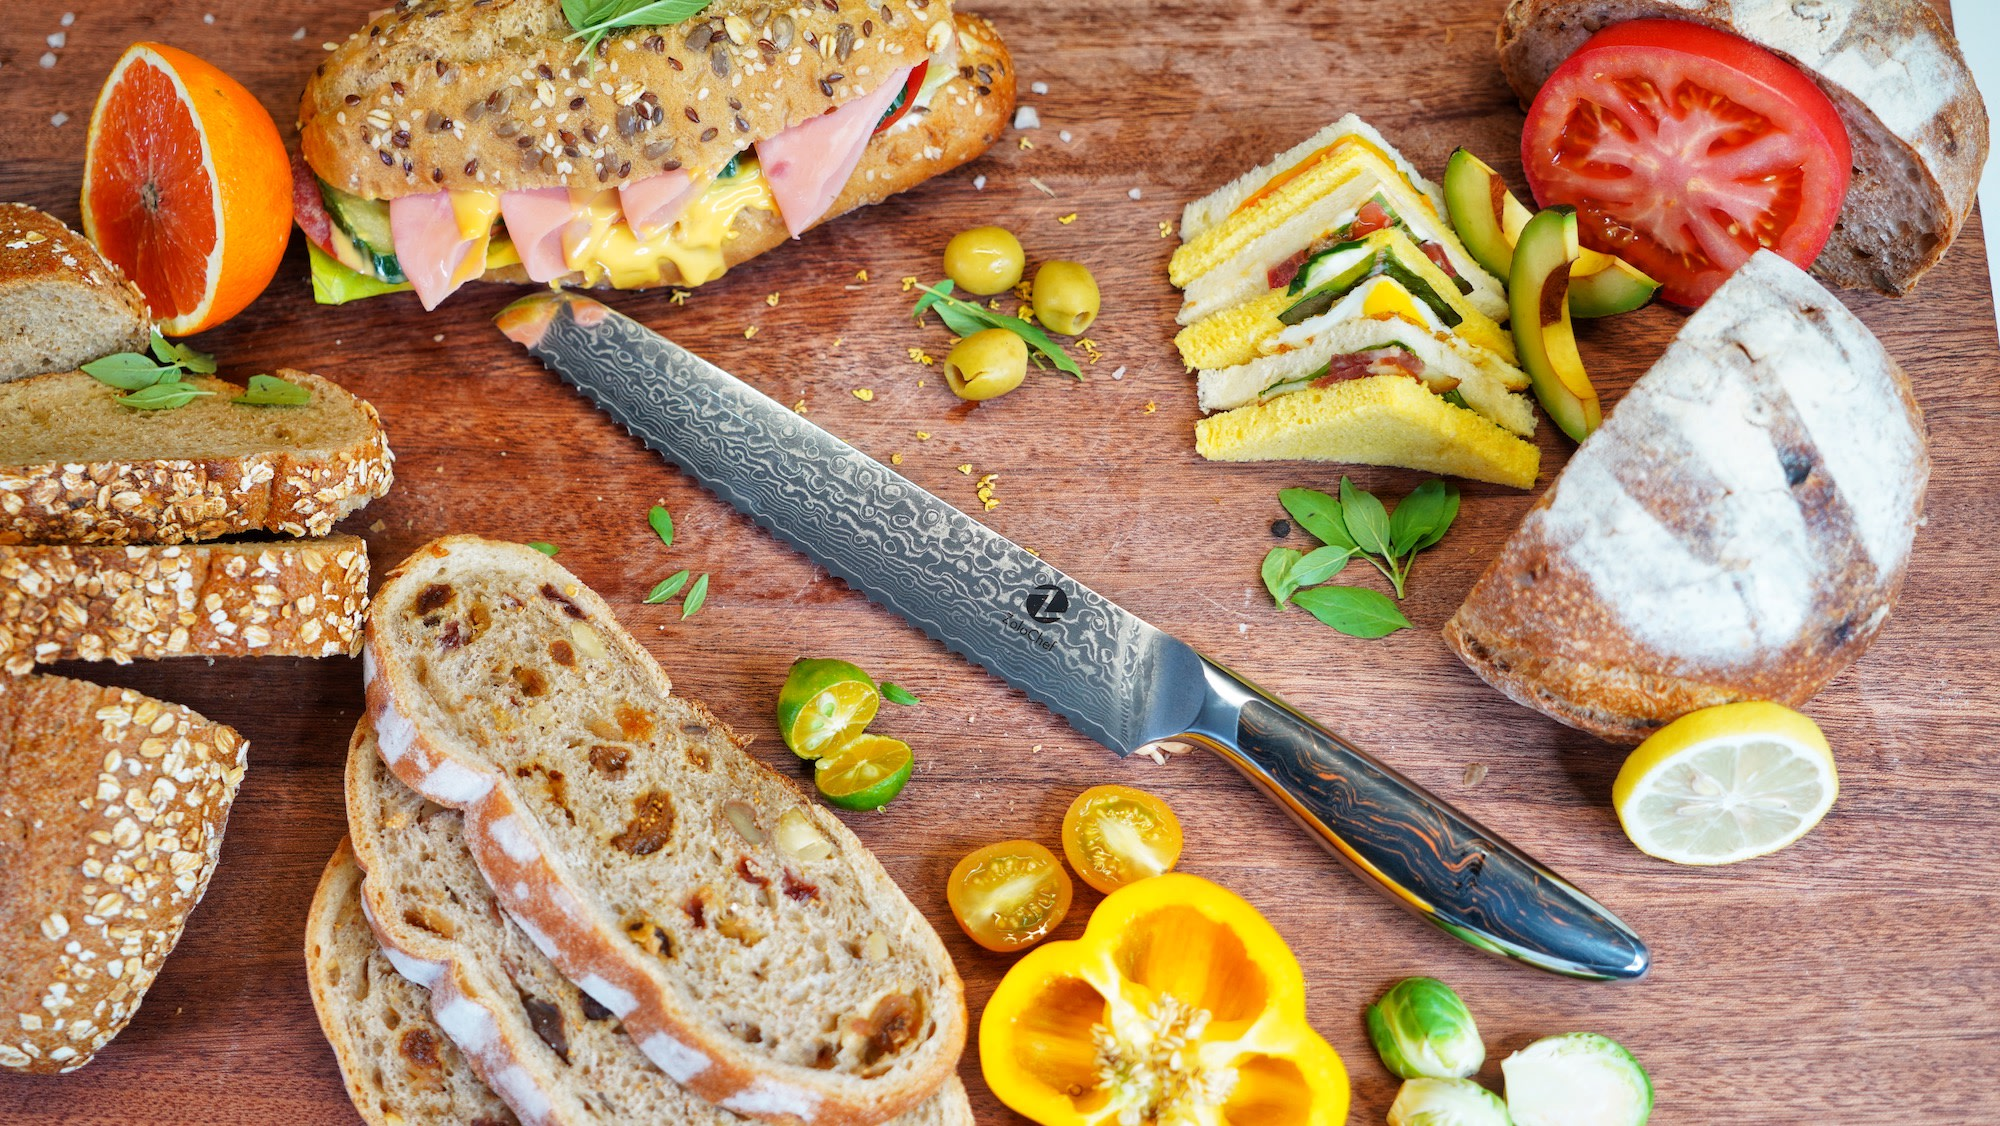 ZoloChef has great controllability. The handle of the knife conforms to the ergonomic design, the grip is tight and comfortable, not easy to slide. Cutting is labor-saving and easy to use.